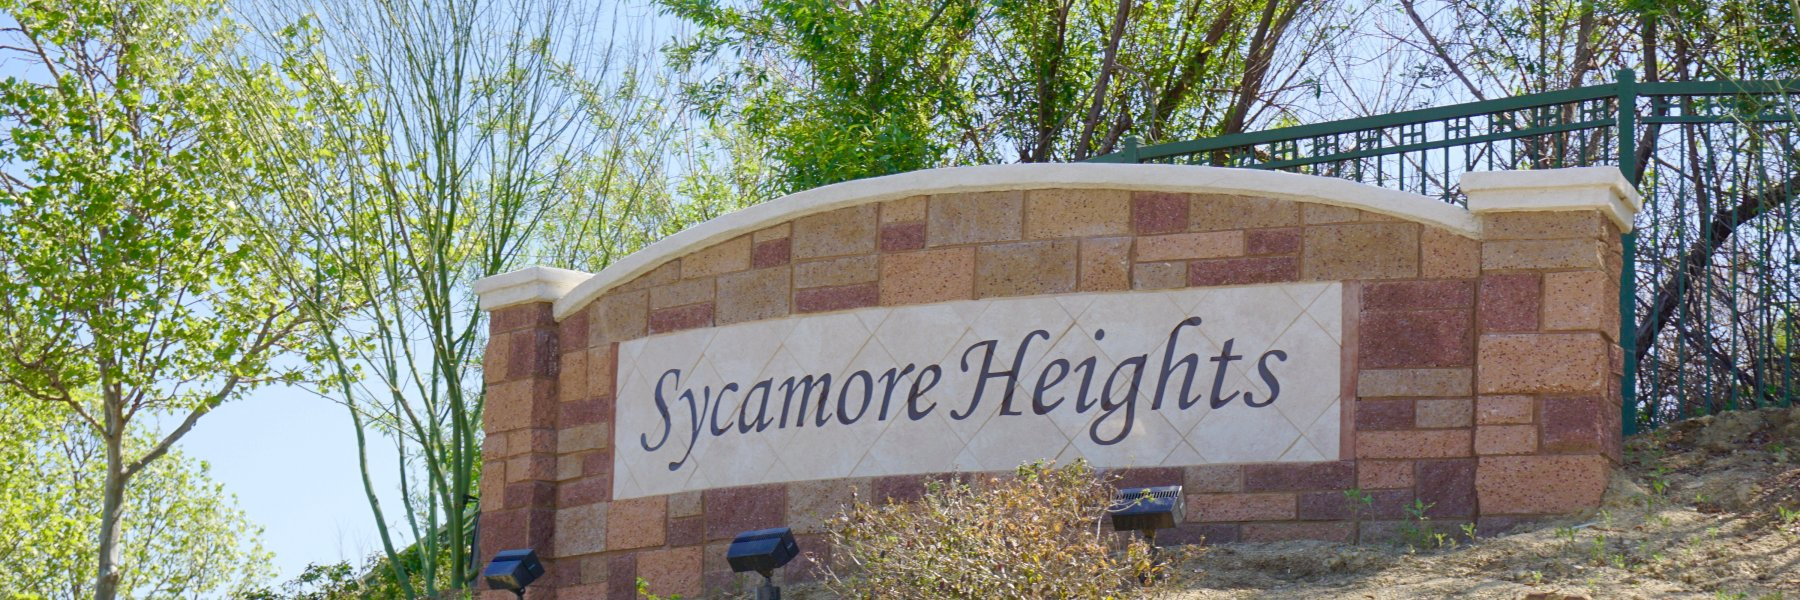 Sycamore Heights is a community of homes in Chino Hills California